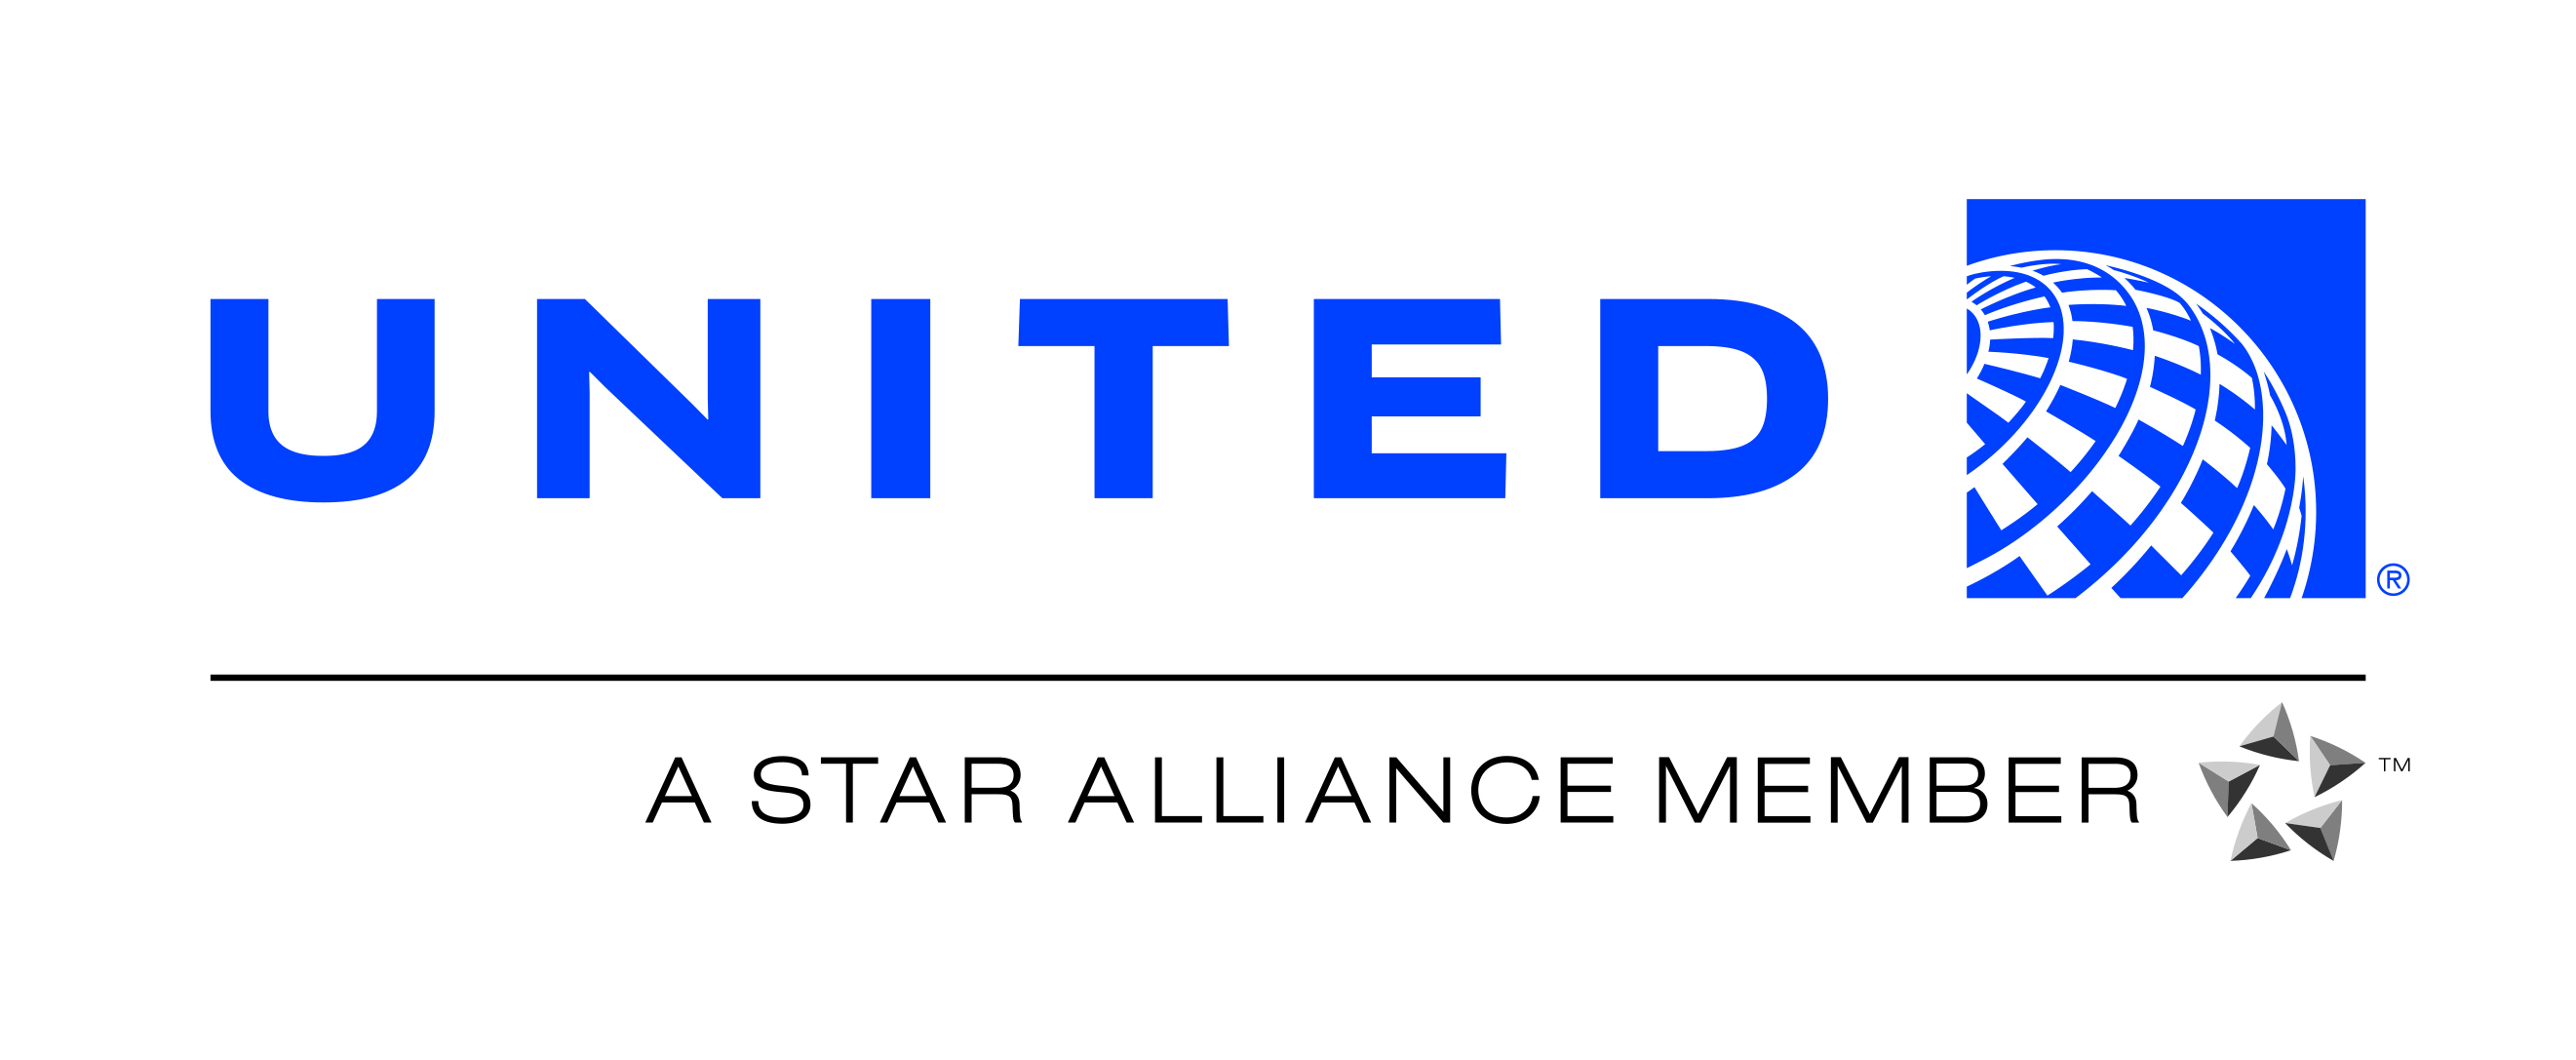 United Airlines Logo 2019